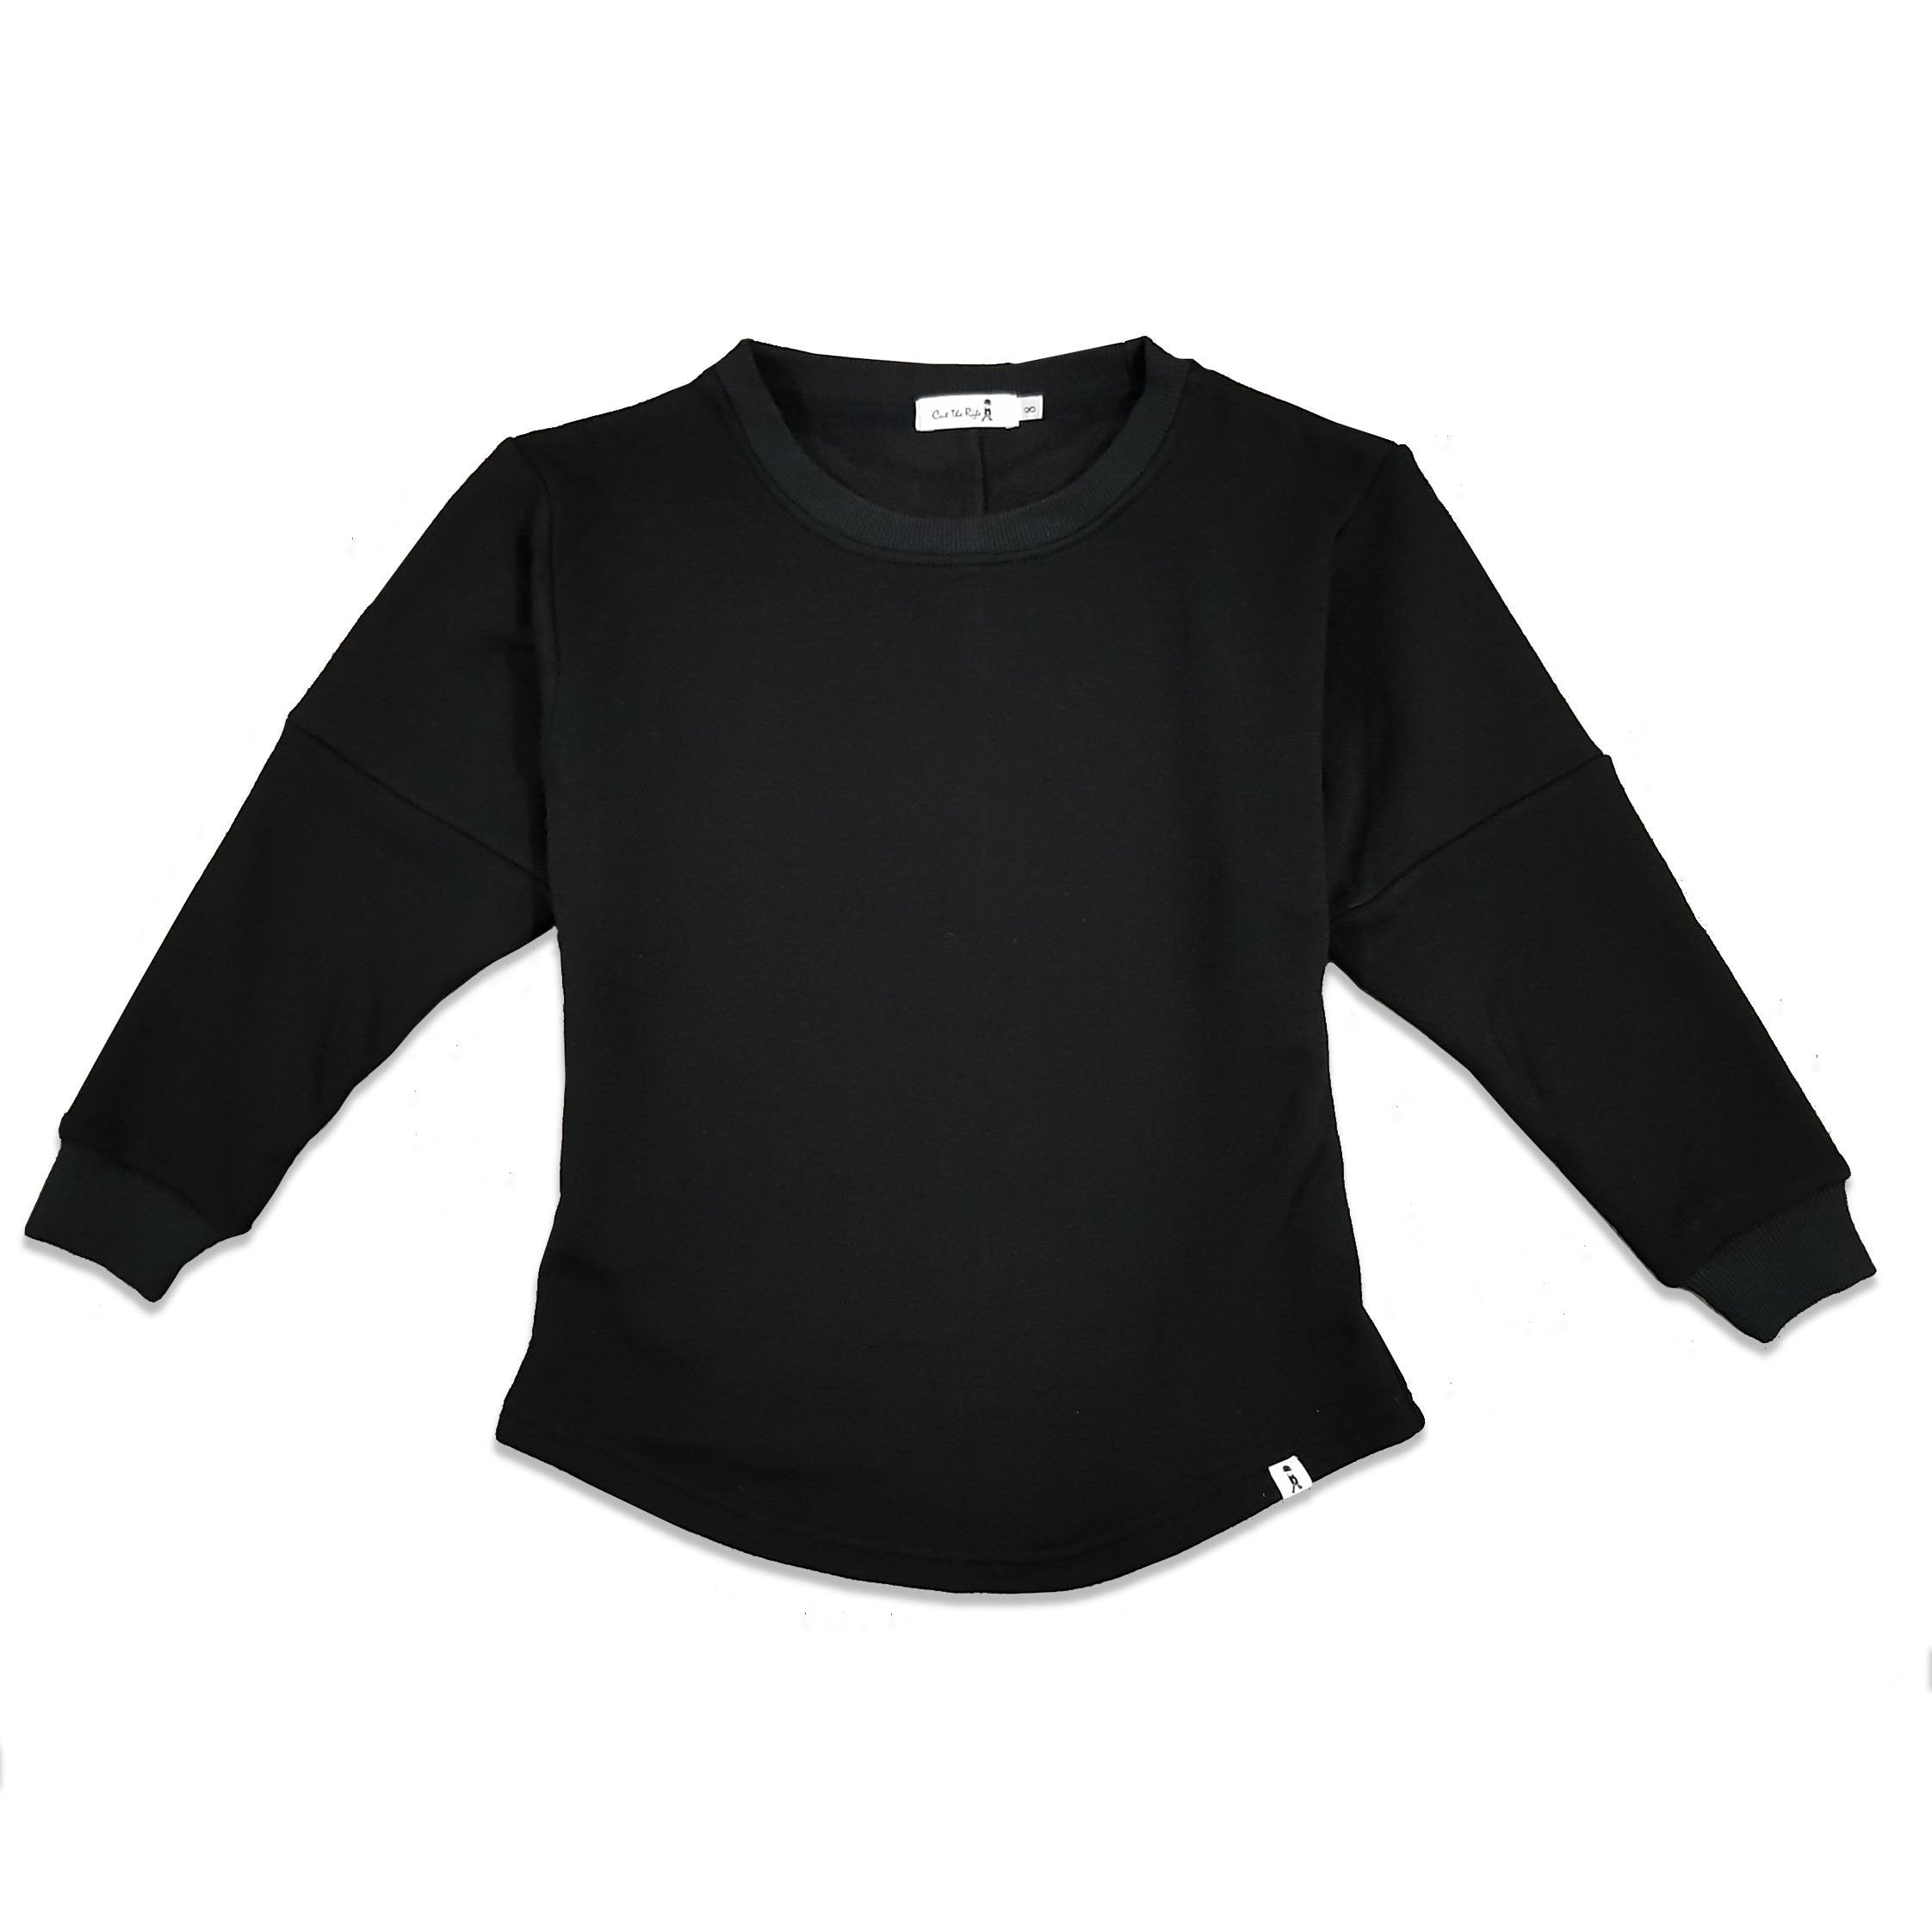 Kids Longline Supersoft Sweatshirt